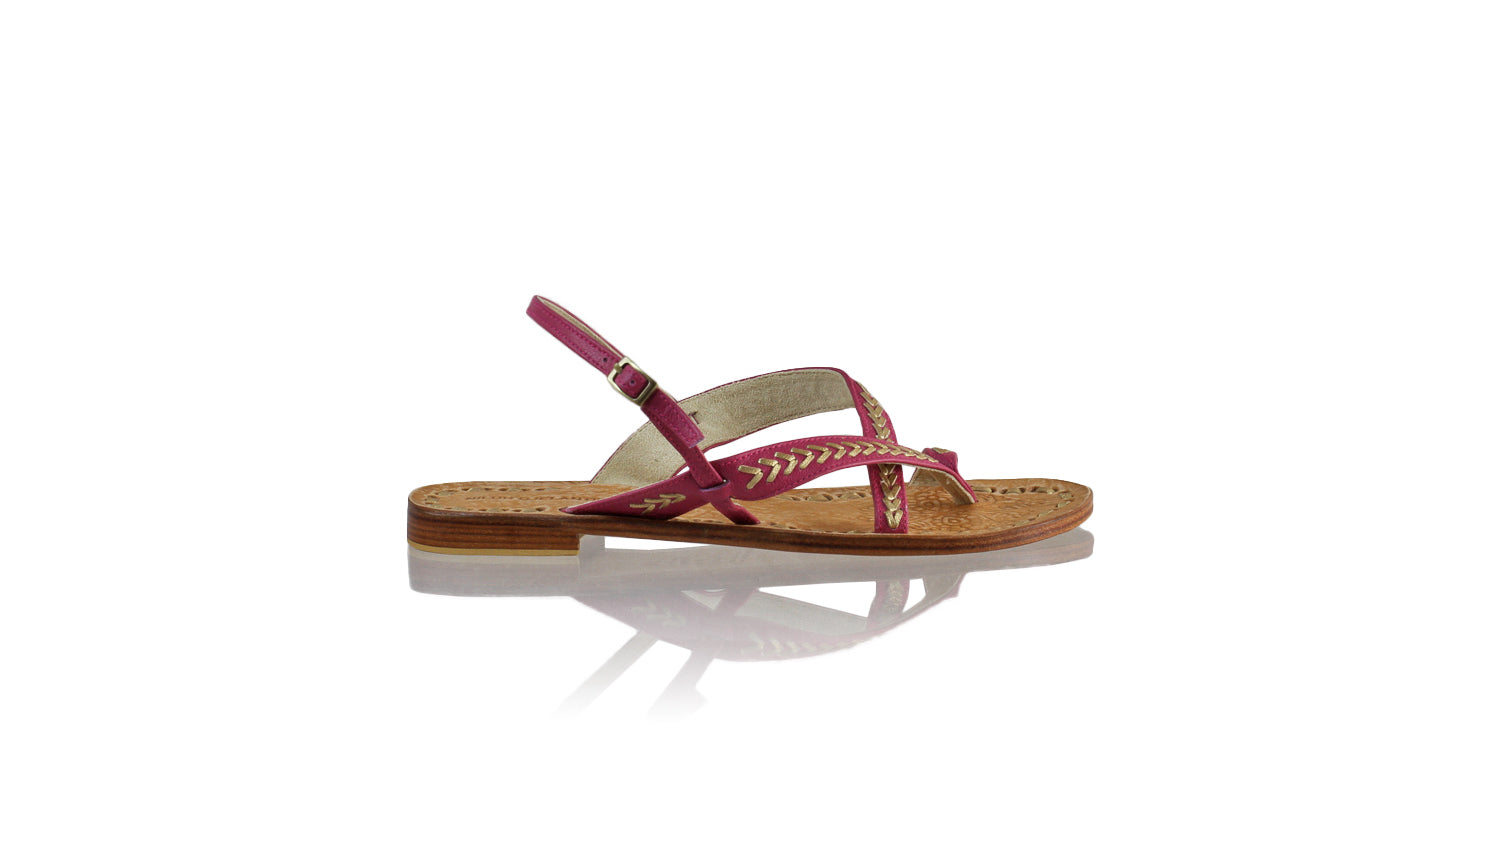 Leather-shoes-Romance 20mm Flat - Fuschia BKK & Gold-sandals flat-NILUH DJELANTIK-NILUH DJELANTIK